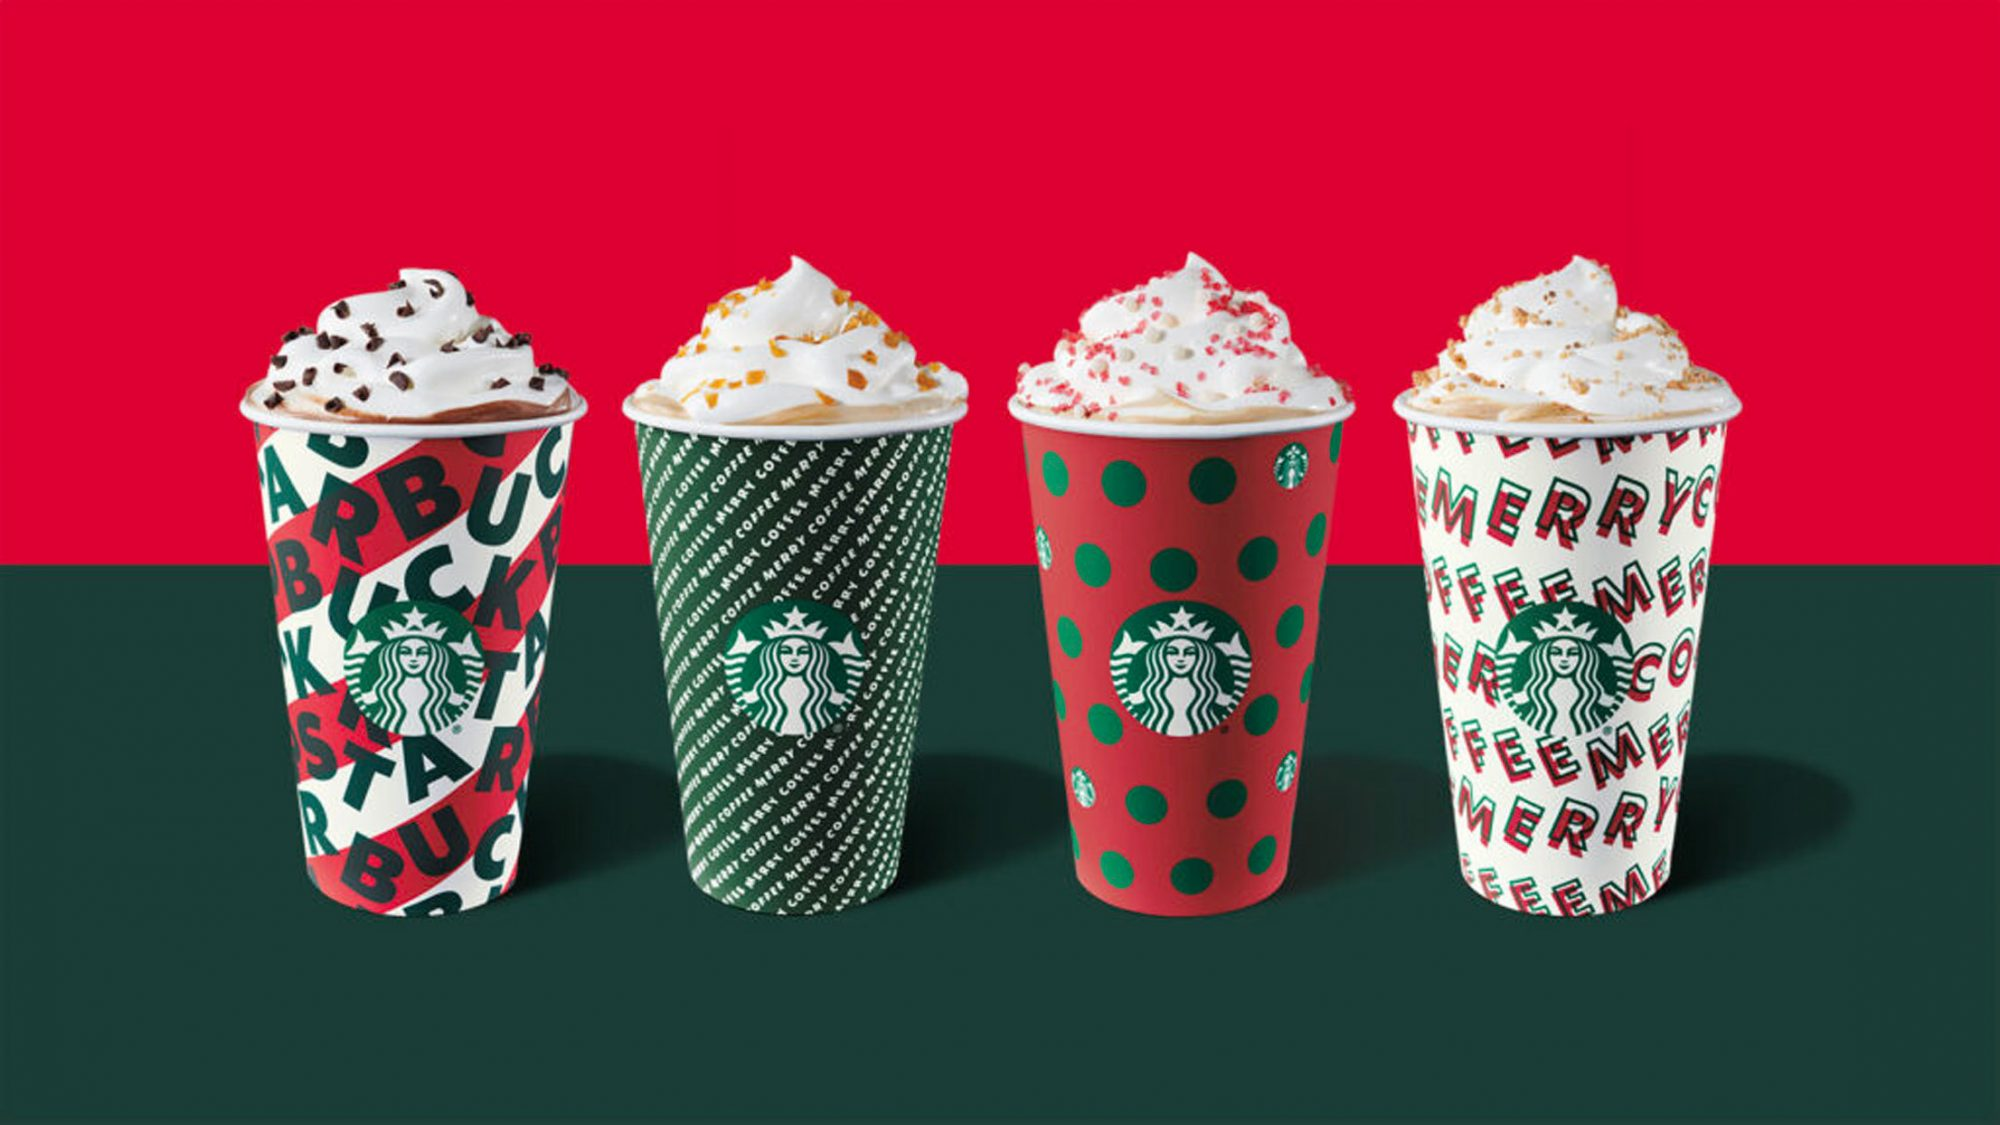 Starbucks holiday drinks with whipped cream